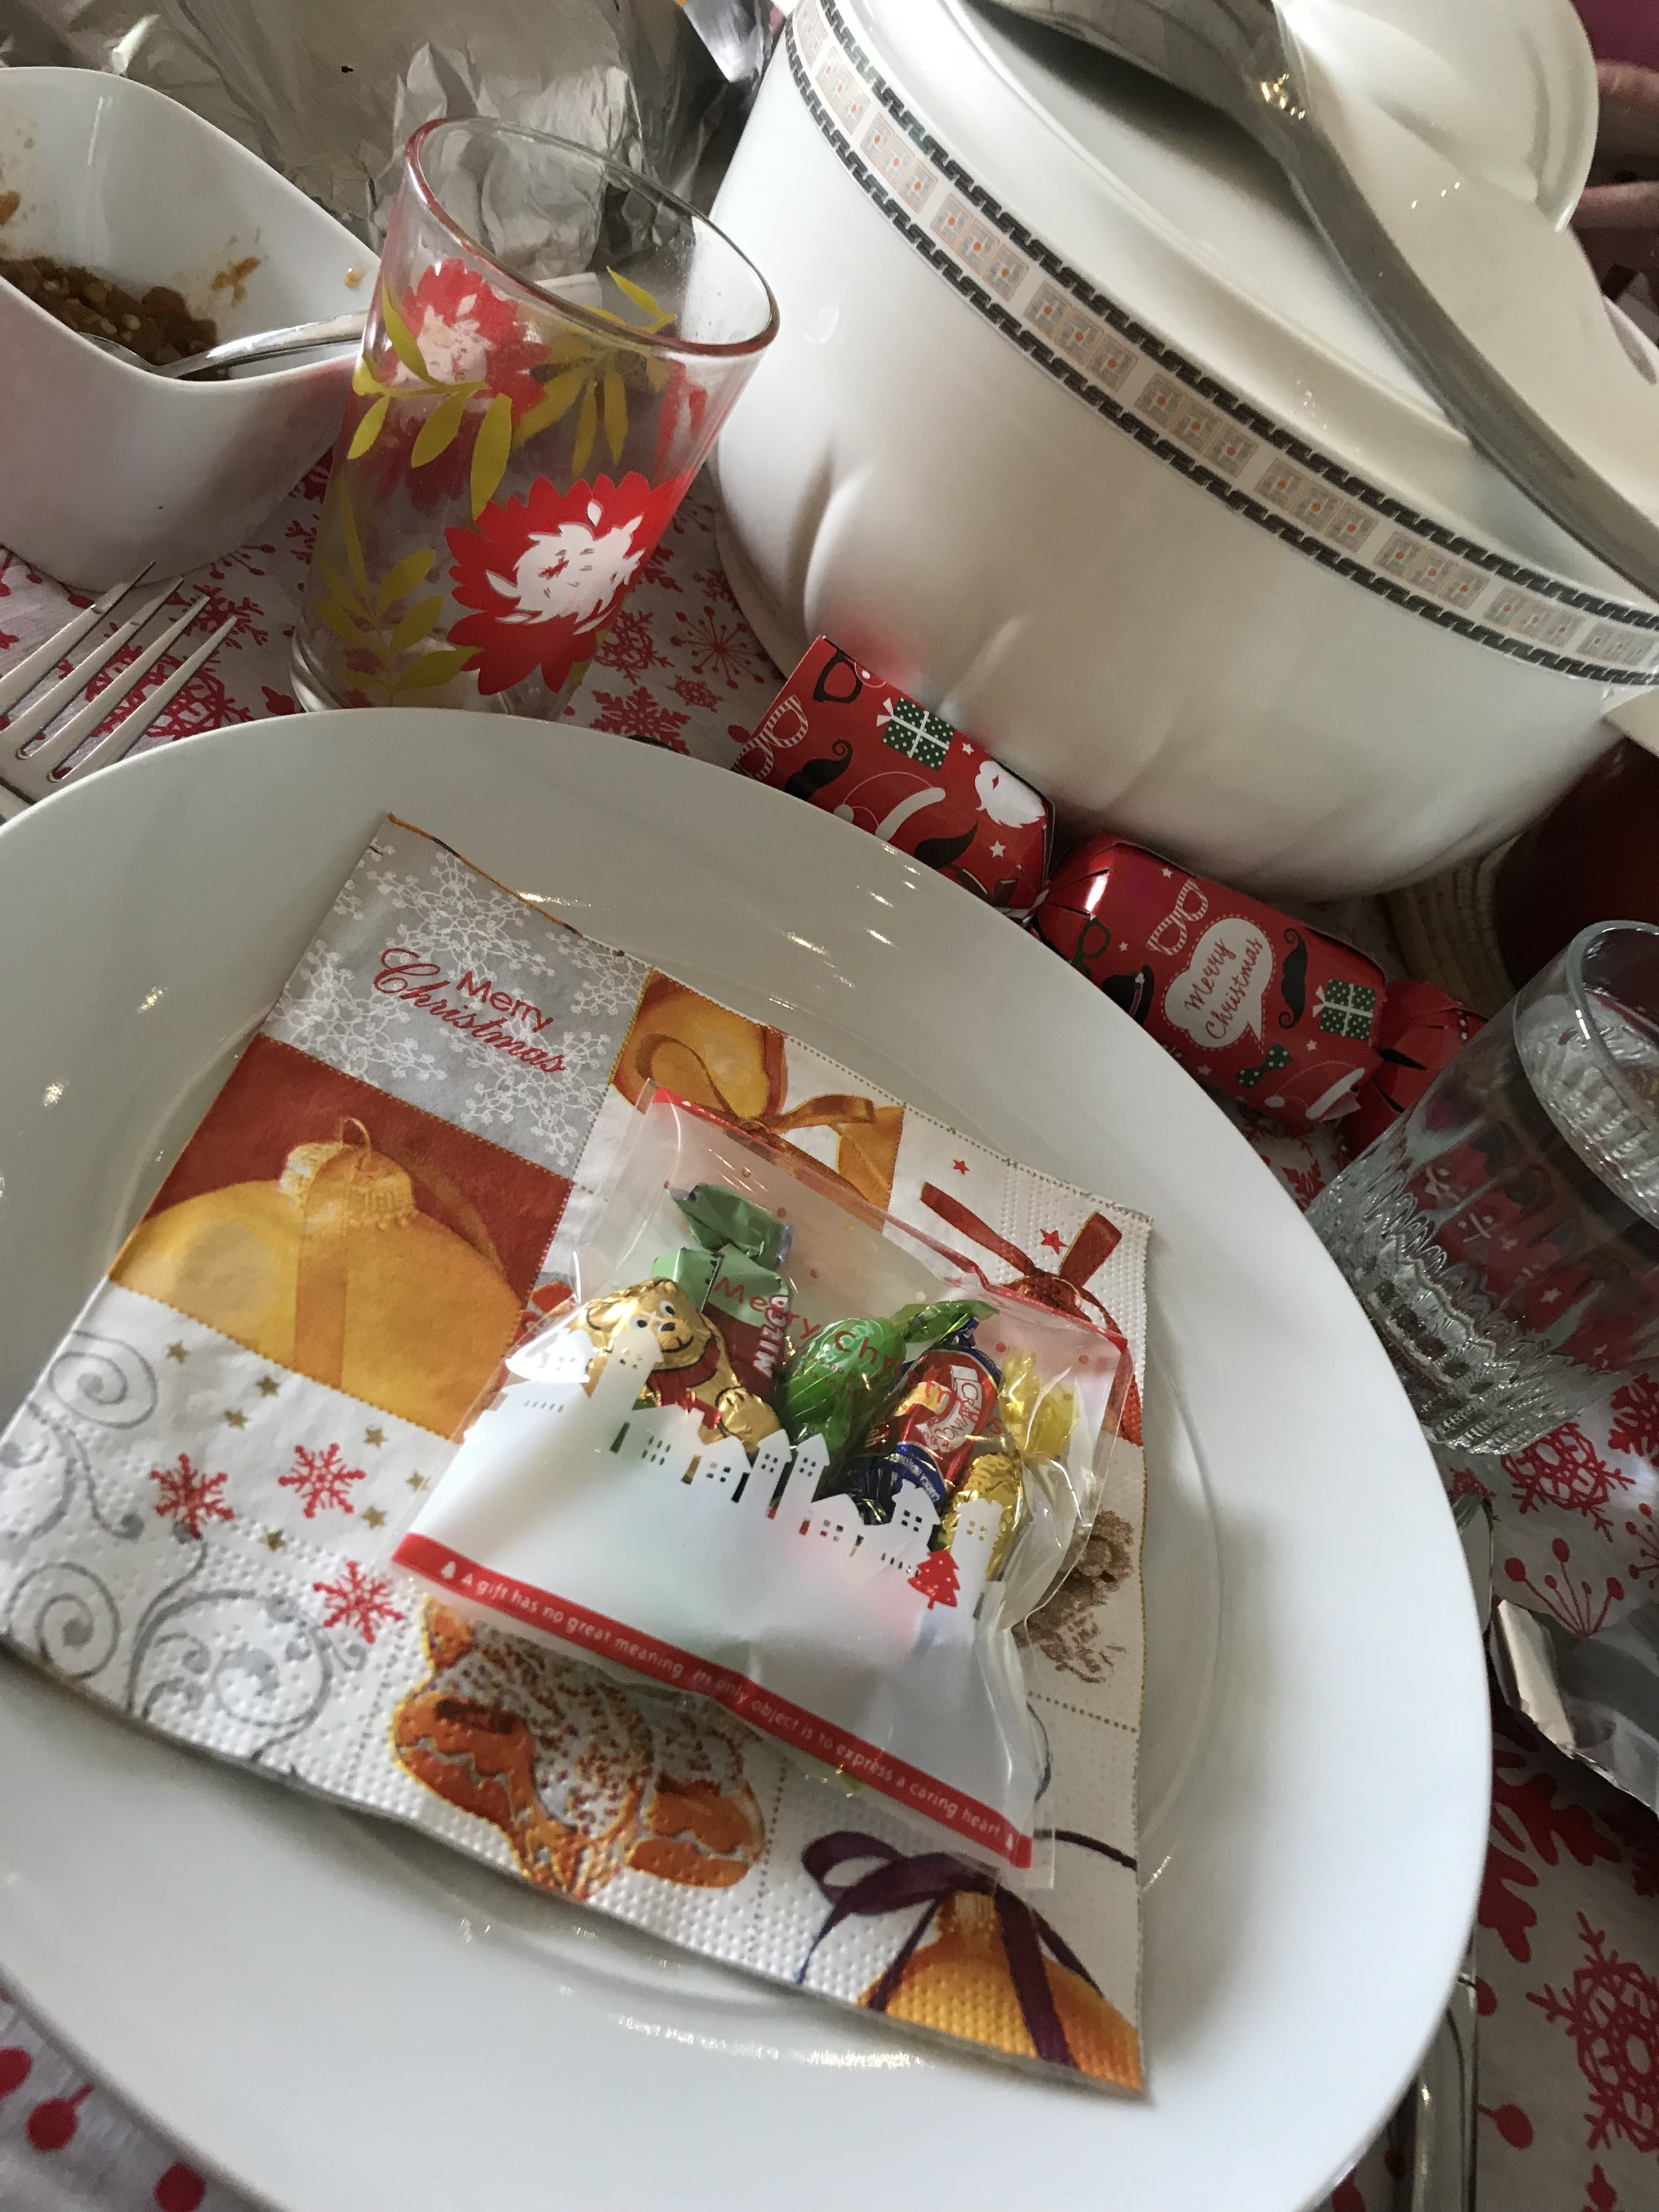 I spent Christmas with the SL International Church community. Christmas Eve at an American's home for Lessons and Carols. Christmas dinner at an Irish/Sierra Leonean couple's home (she's Irish, he's from here). She was an outstanding host right down to the bag of candies on my plate.